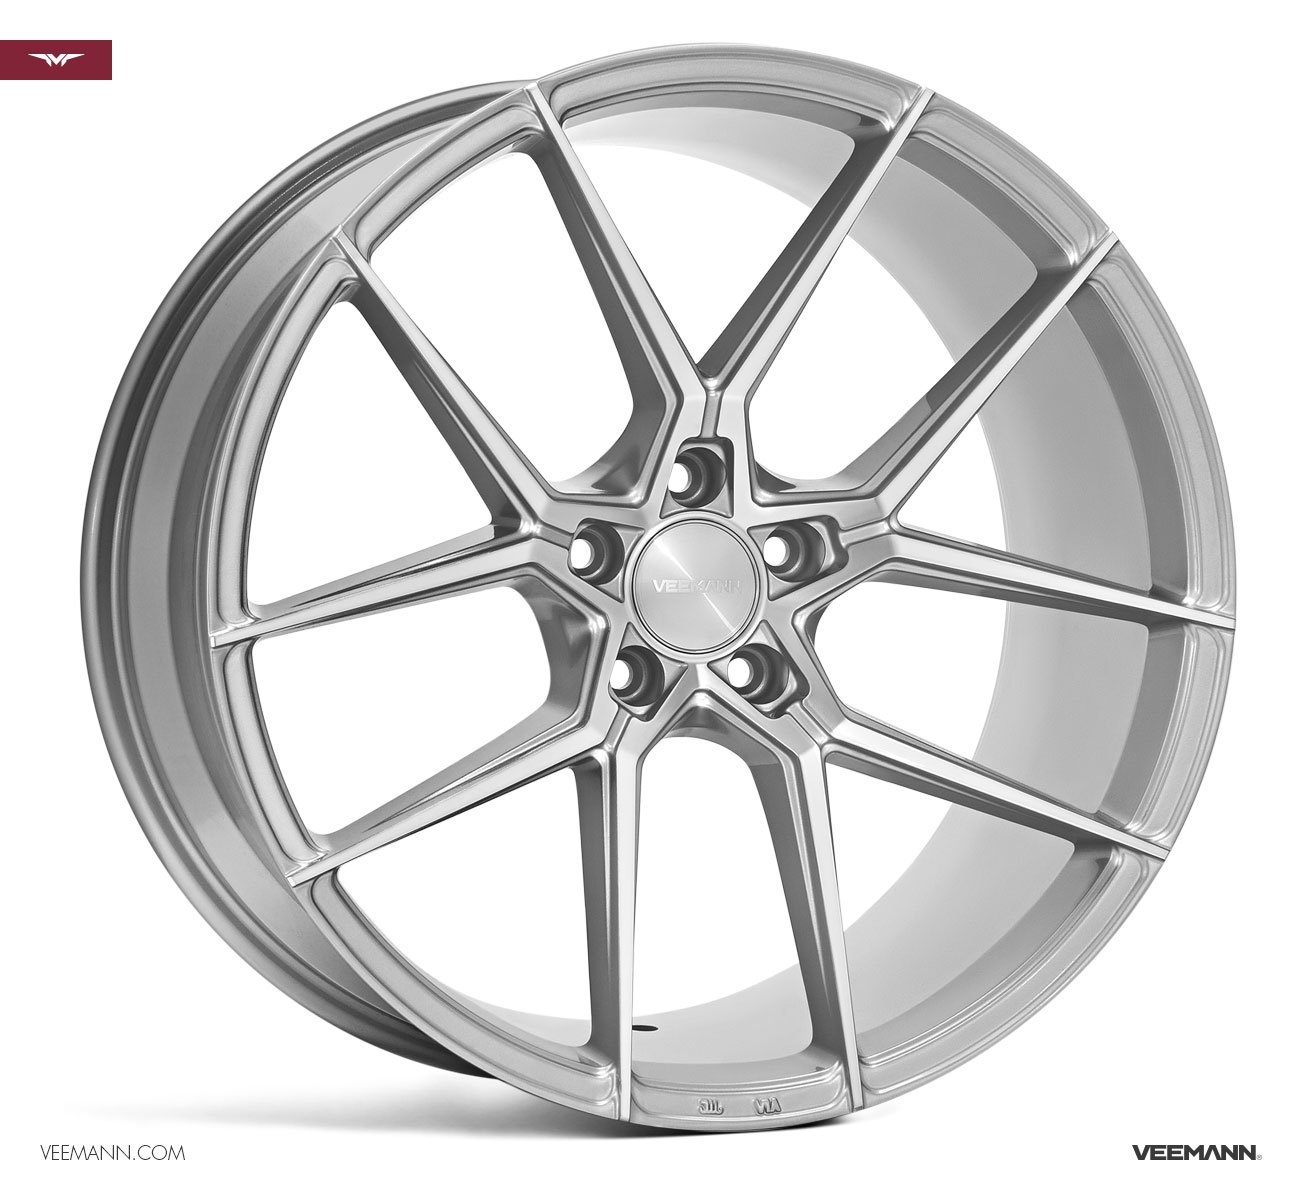 "NEW 20"" VEEMANN V-FS39 ALLOY WHEELS IN SILVER POL WITH WIDER 10"" REAR"